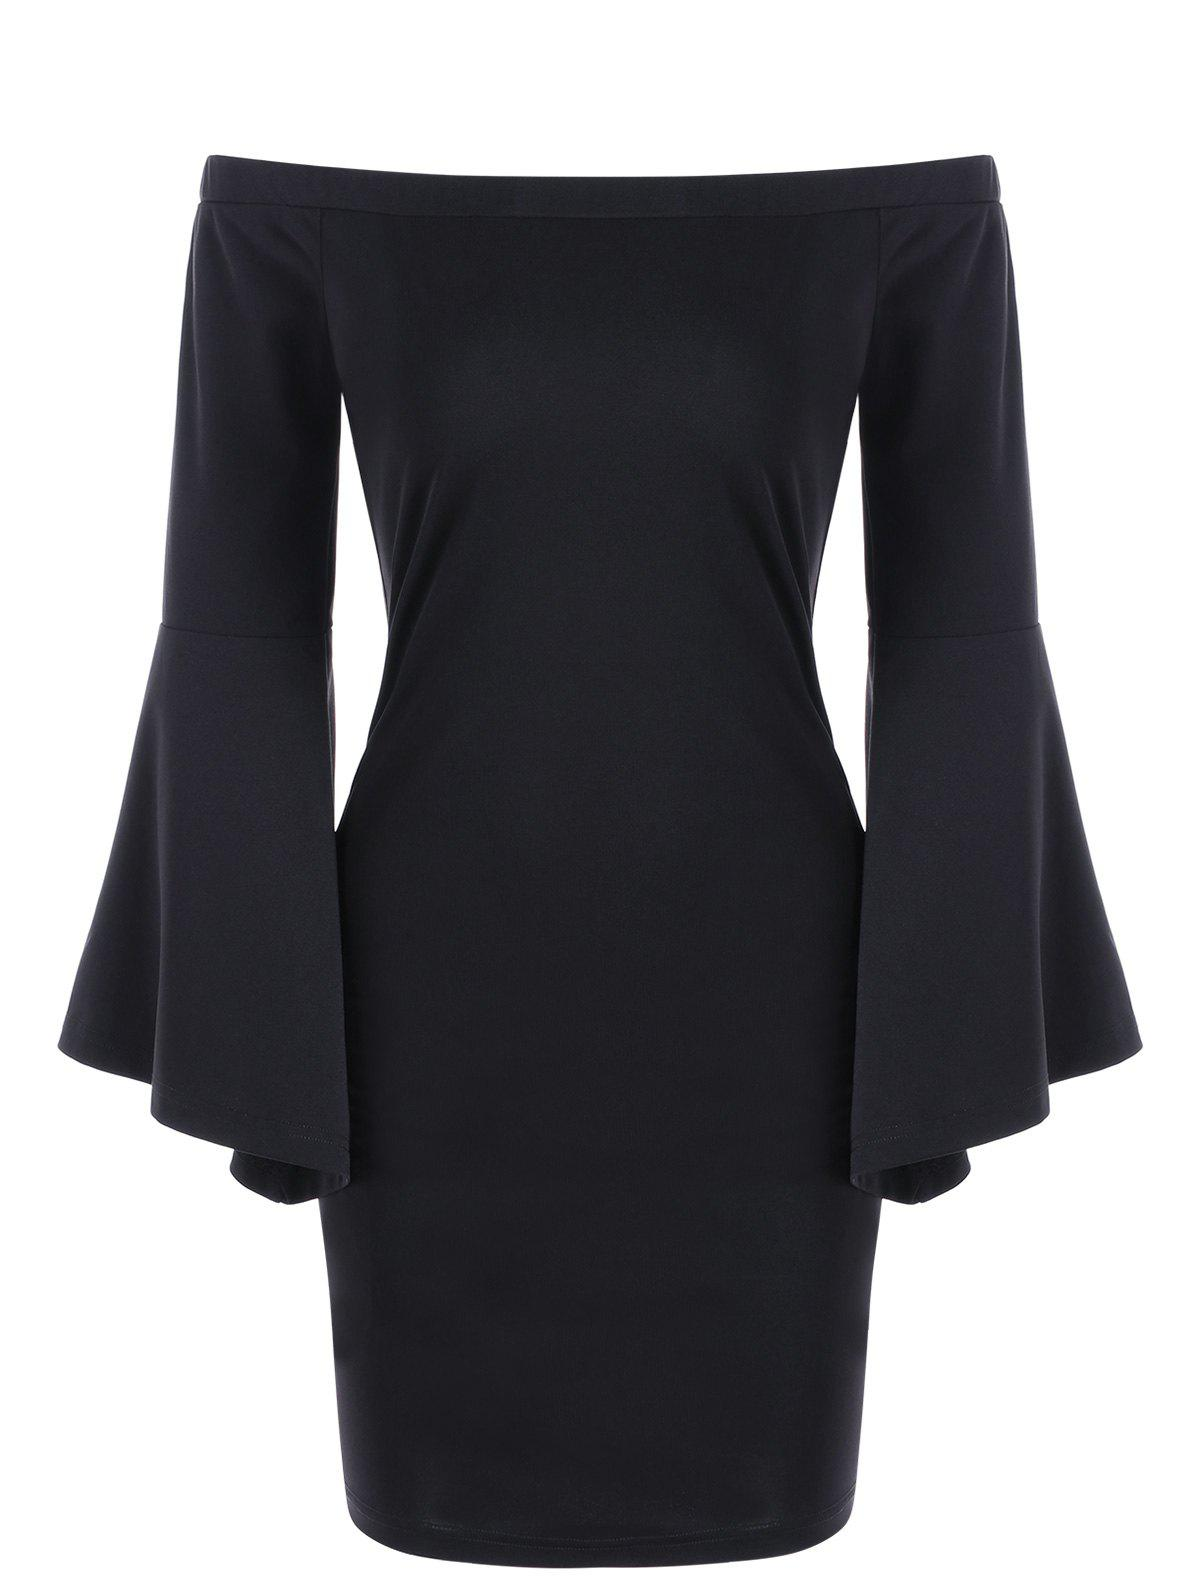 Off Shoulder Flare Sleeve Sheath DressWOMEN<br><br>Size: L; Color: BLACK; Style: Brief; Material: Polyester,Spandex; Silhouette: Sheath; Dresses Length: Mini; Neckline: Off The Shoulder; Sleeve Length: Long Sleeves; Pattern Type: Solid Color; With Belt: No; Season: Fall,Spring,Summer; Weight: 0.3100kg; Package Contents: 1 x Dress; Occasion: Casual,Club,Evening,Formal,Homecoming,Night Out,Pageant Dresses,Prom,Semi Formal;